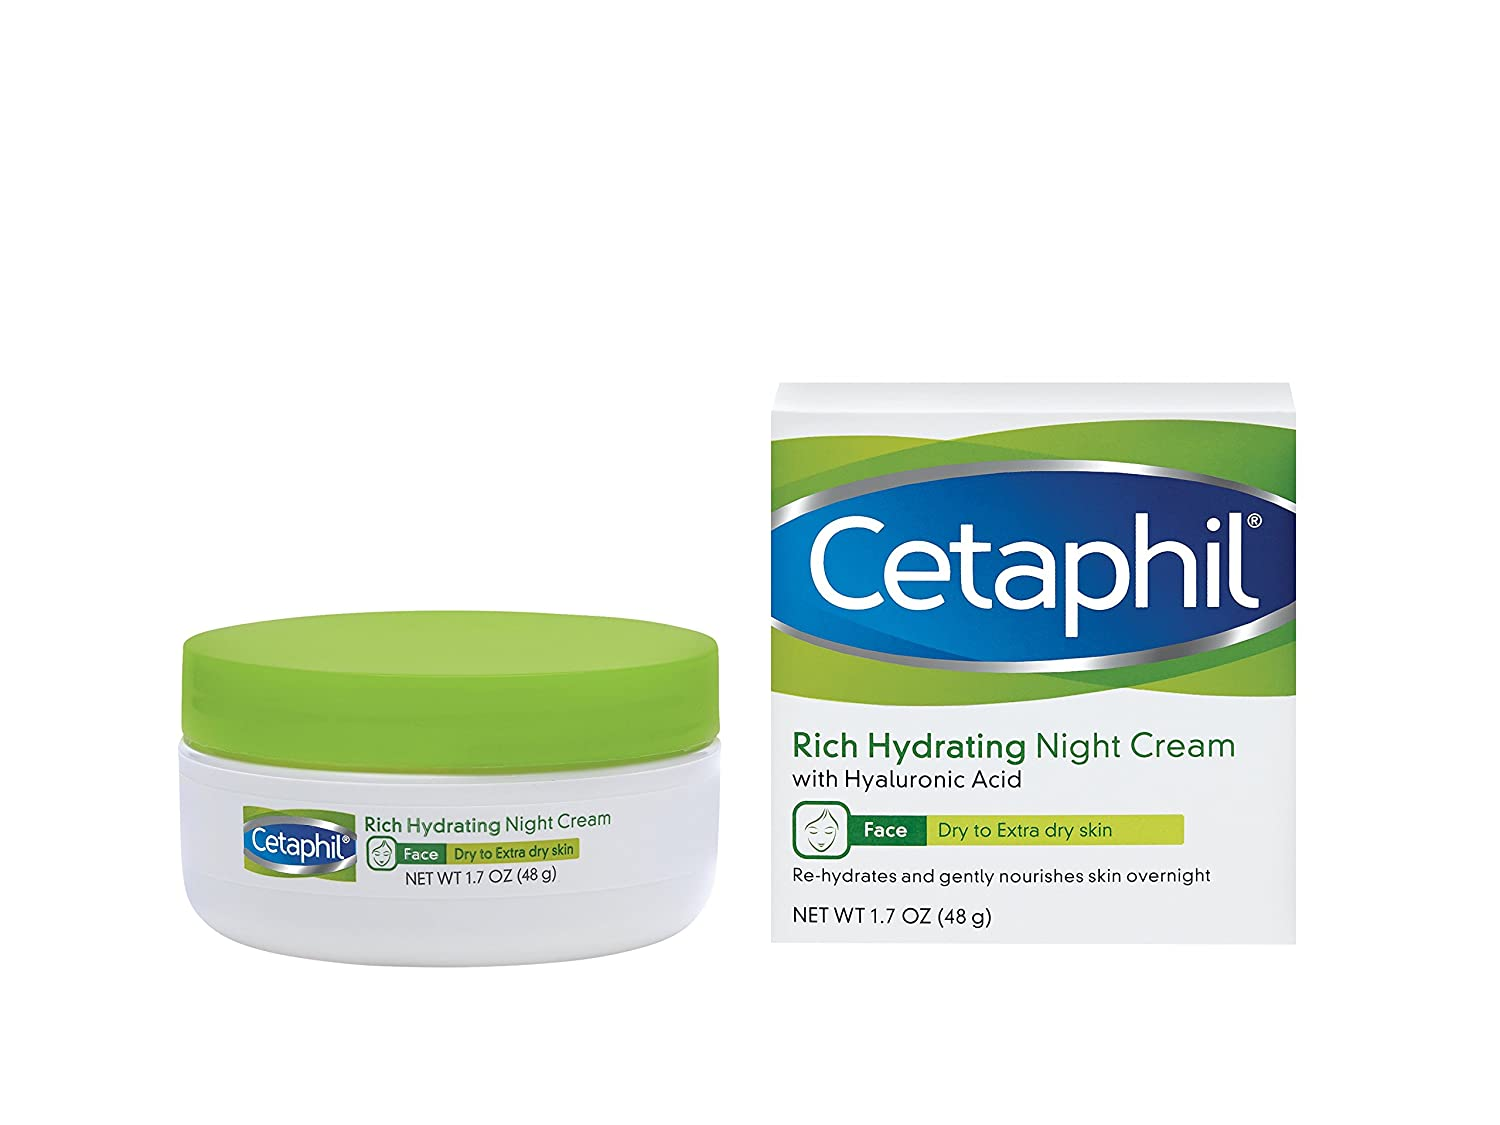 Cetaphil Rich Hydrating Night Cream with Hyaluronic Acid, 1.7 Ounce 302993889021